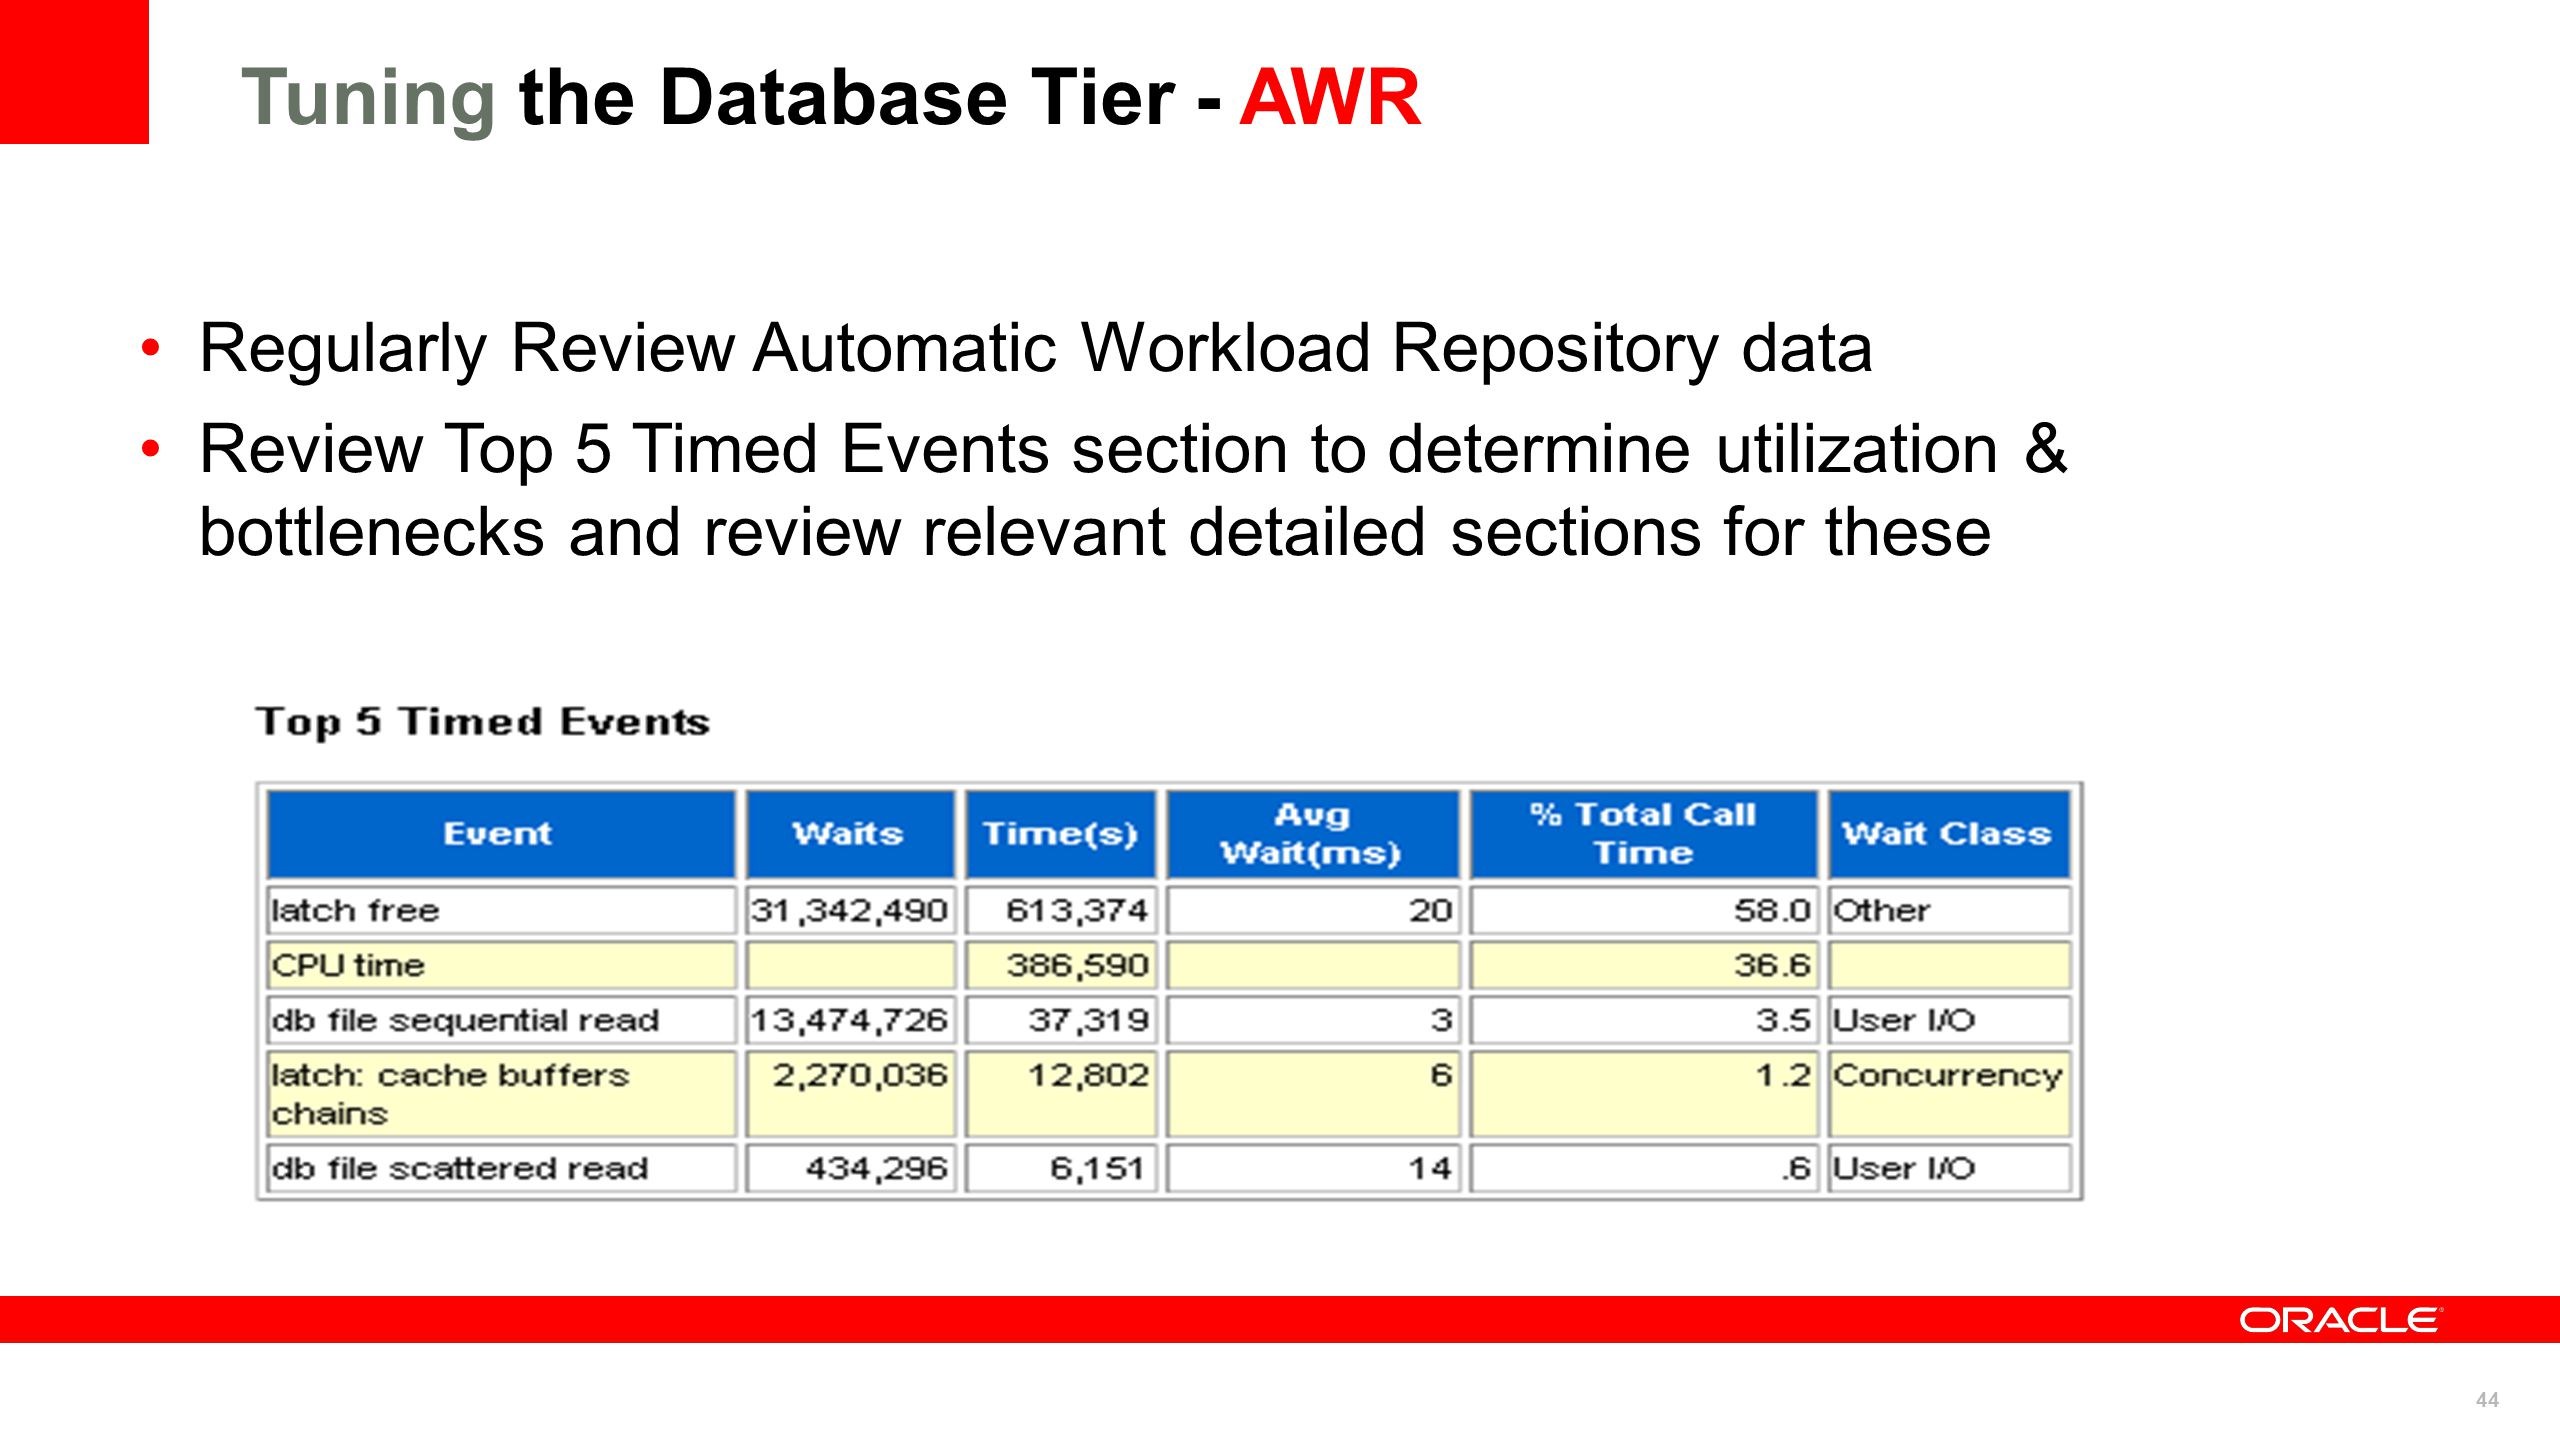 44 Tuning the Database Tier - AWR Regularly Review Automatic Workload Repository data Review Top 5 Timed Events section to determine utilization & bot